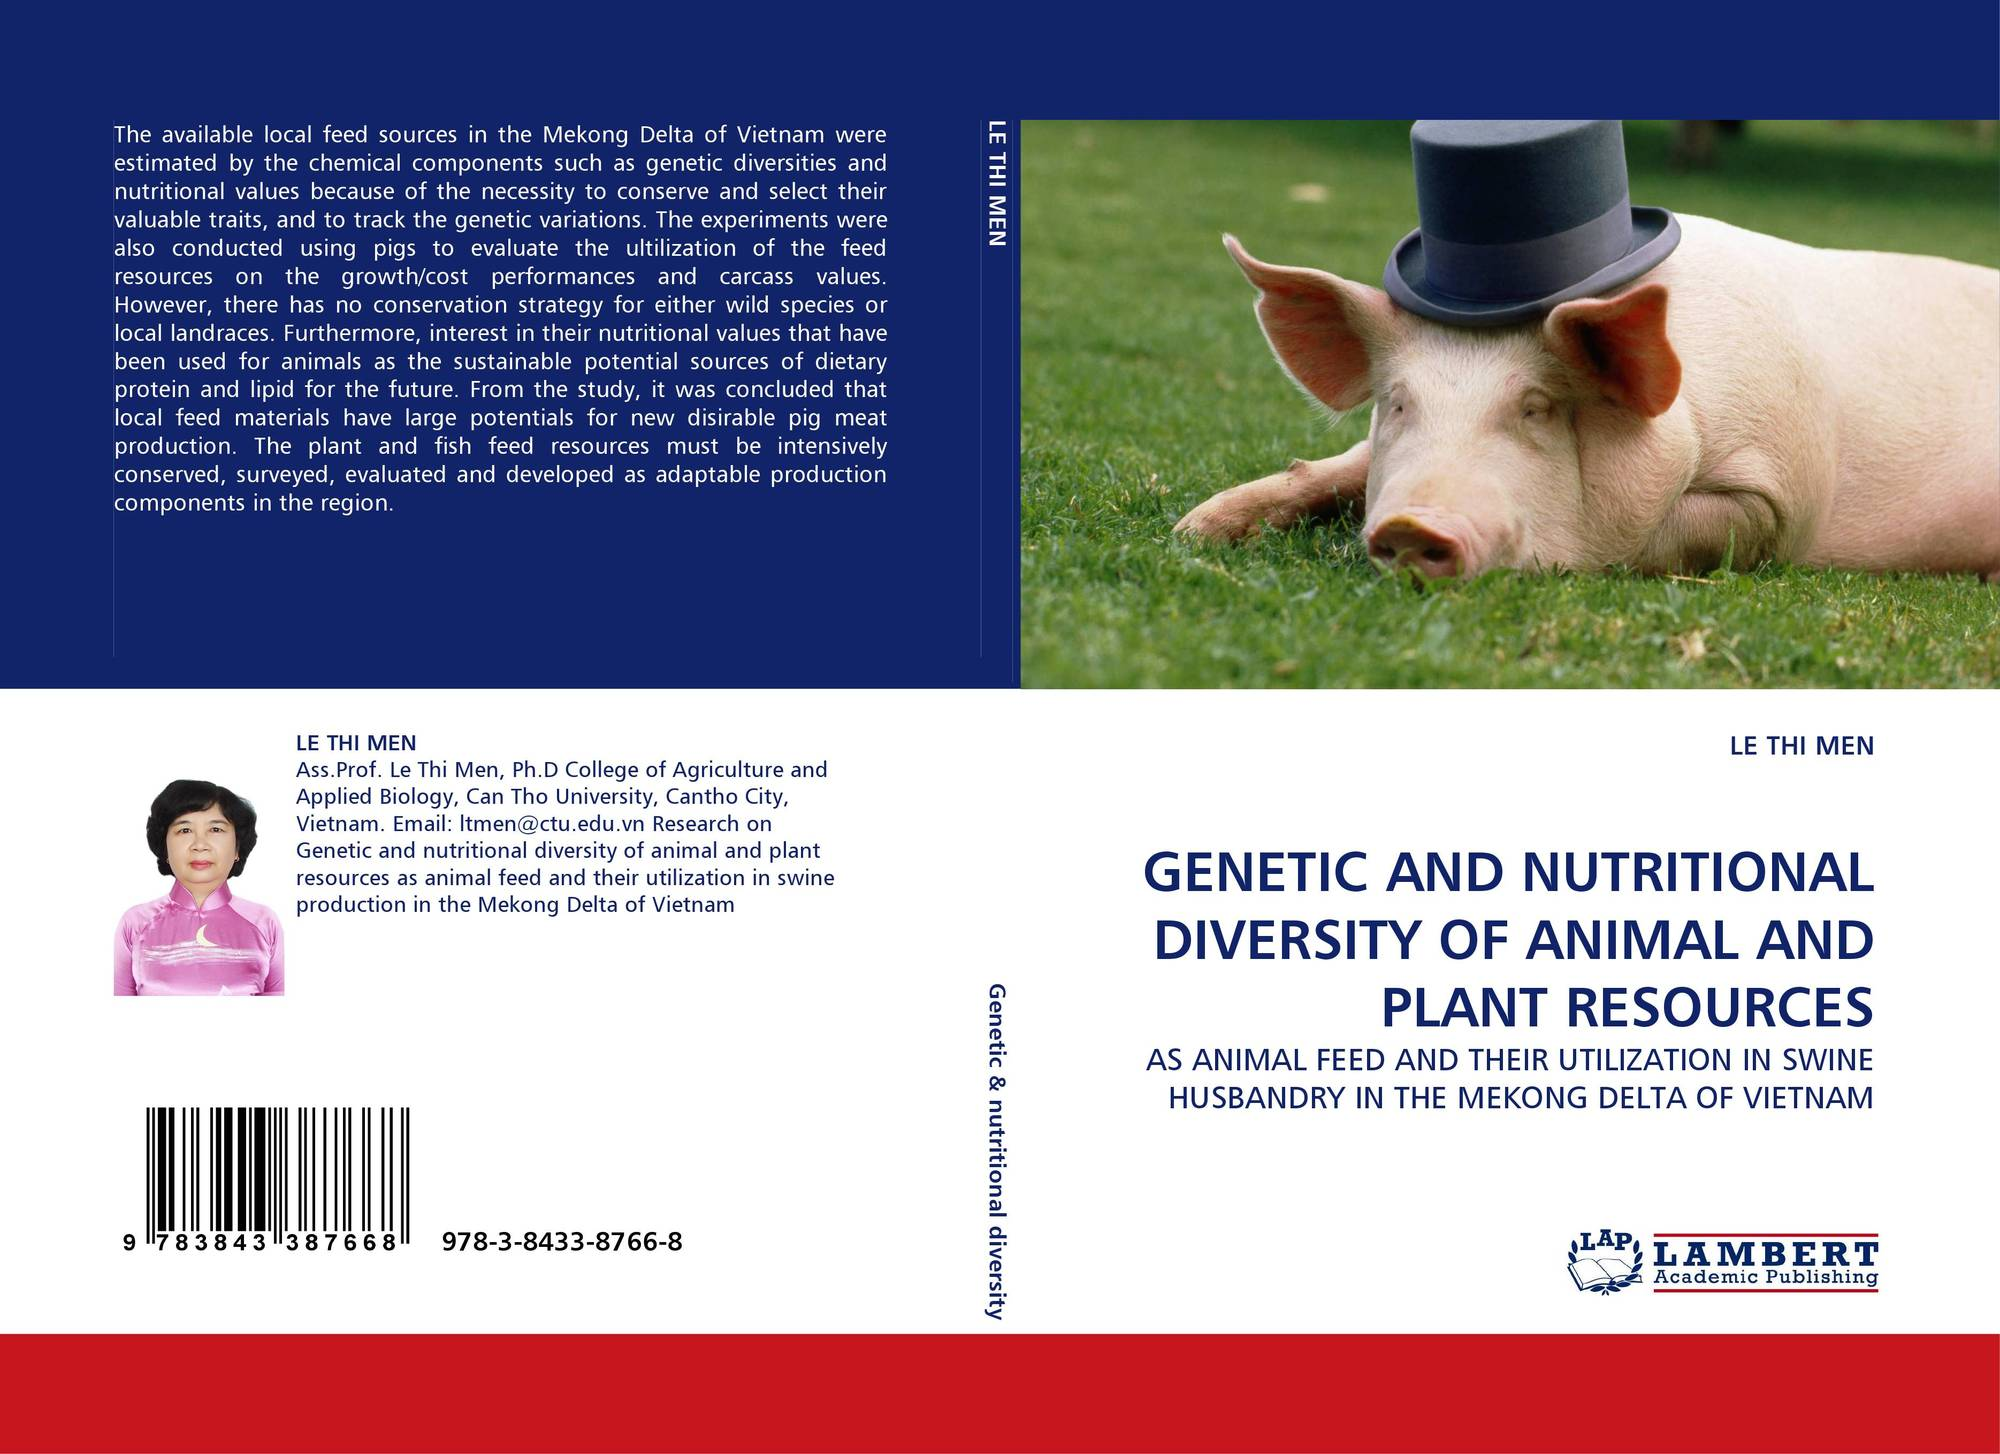 GENETIC AND NUTRITIONAL DIVERSITY OF ANIMAL AND PLANT